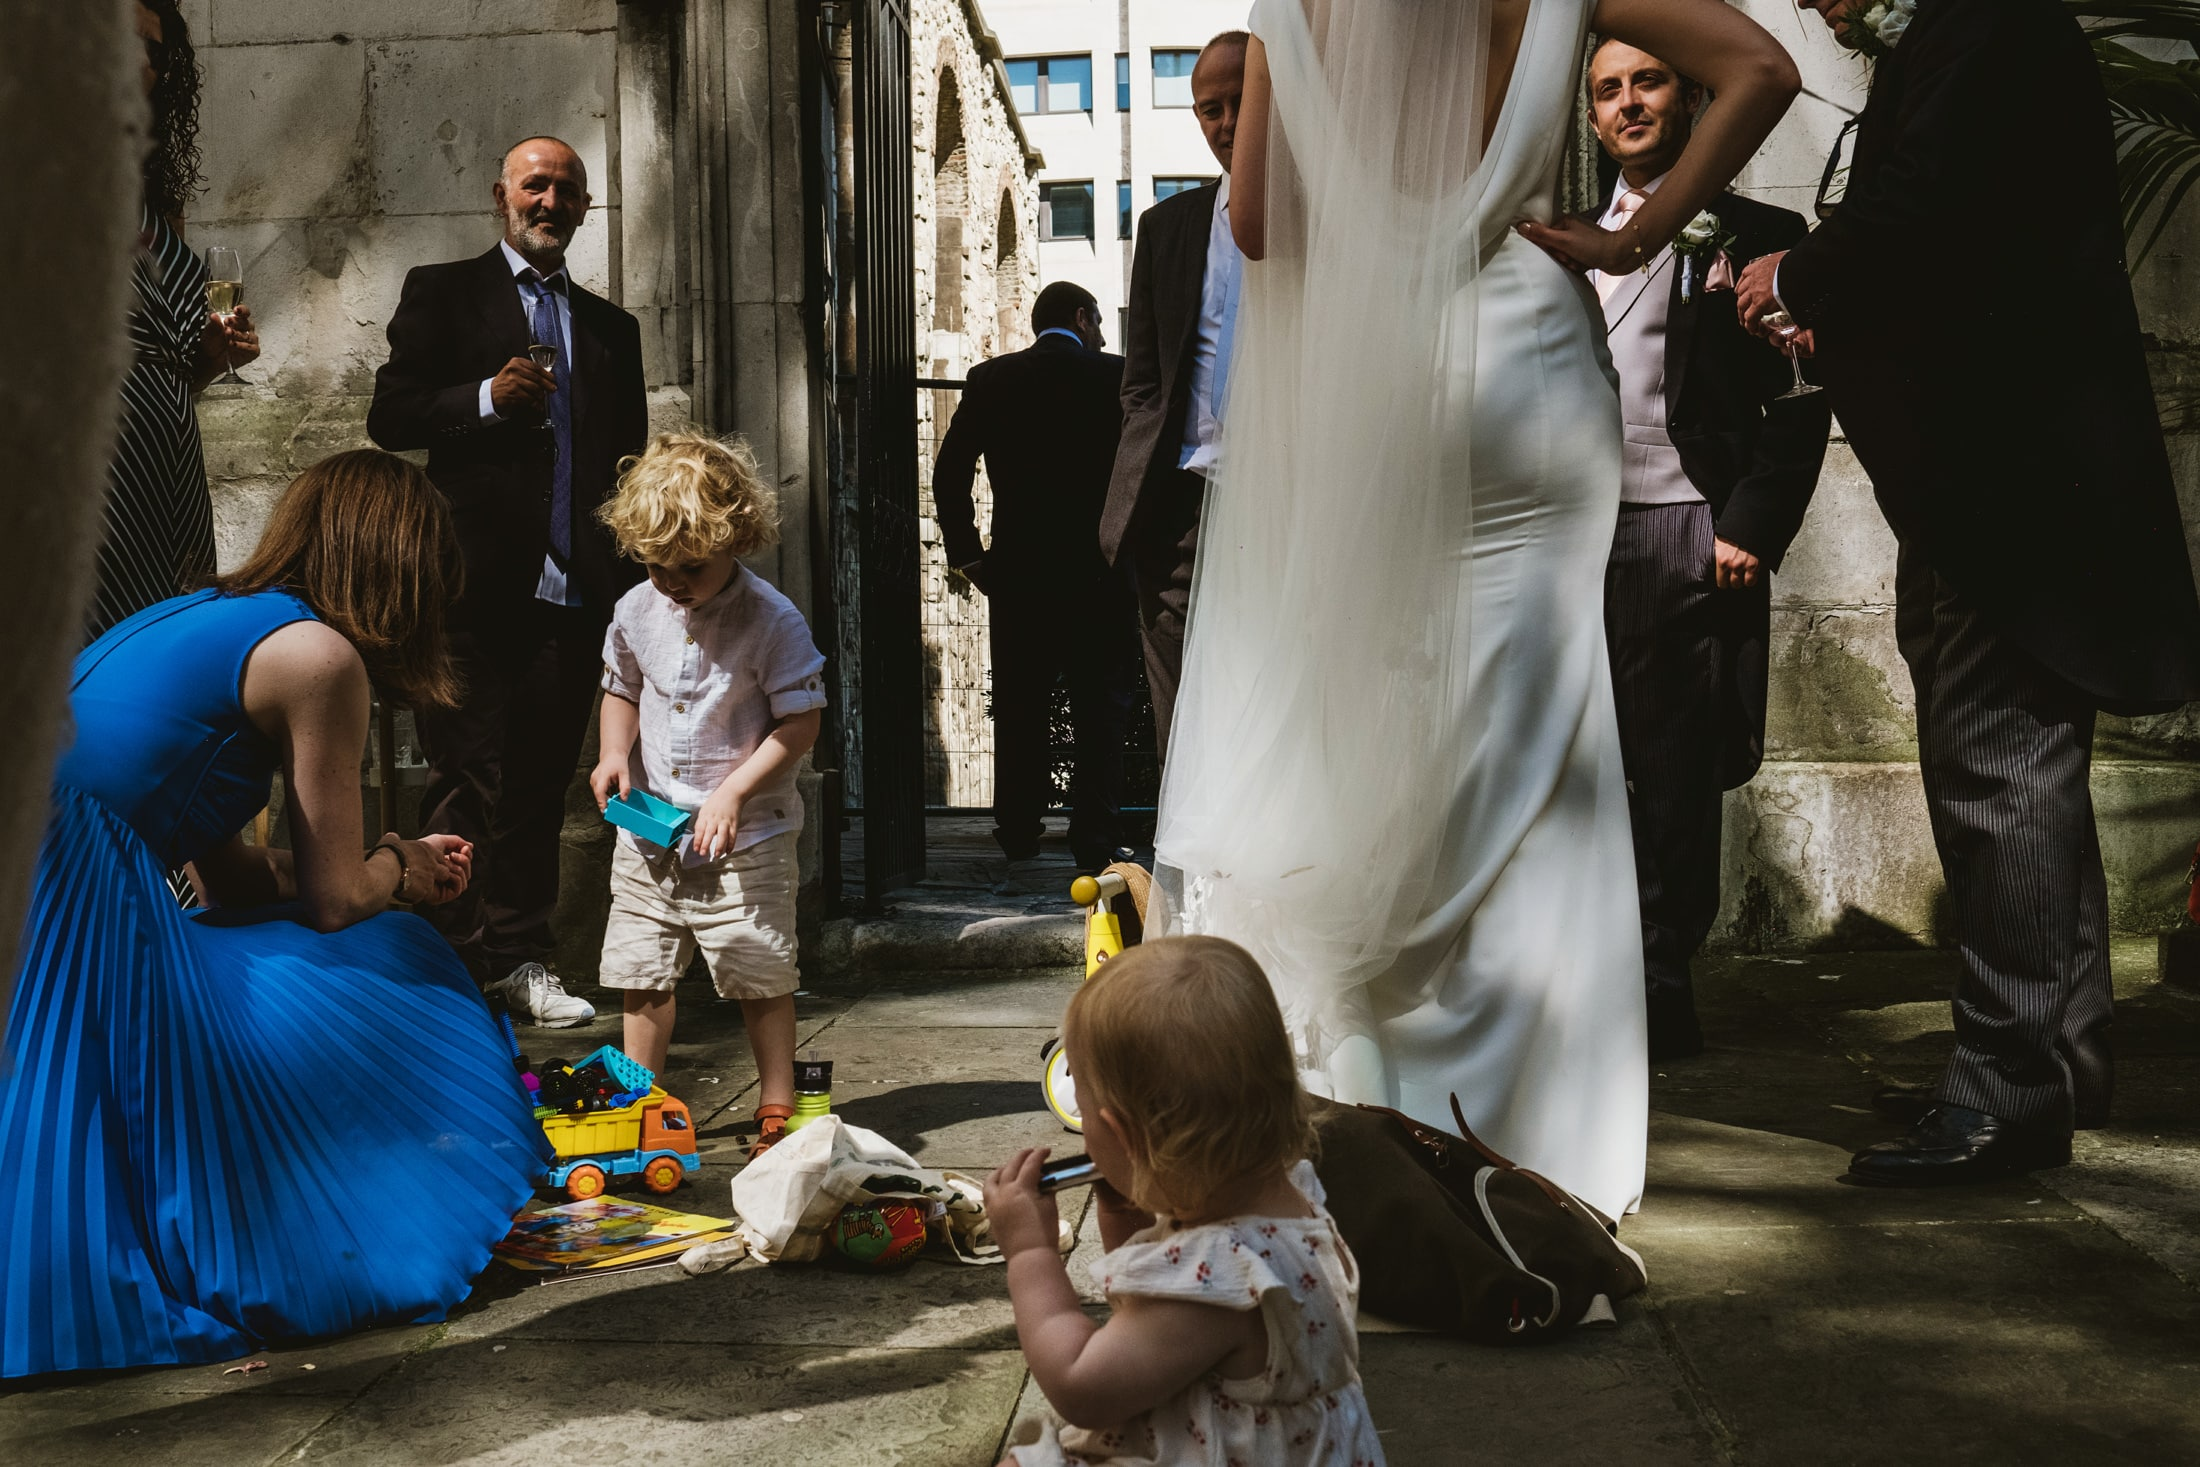 Multiple small stories erupt between the guests and children at an outdoor London wedding ceremony. The photograph is carefully framed to allow each story room to breathe and embrace the light and shadow of the area.